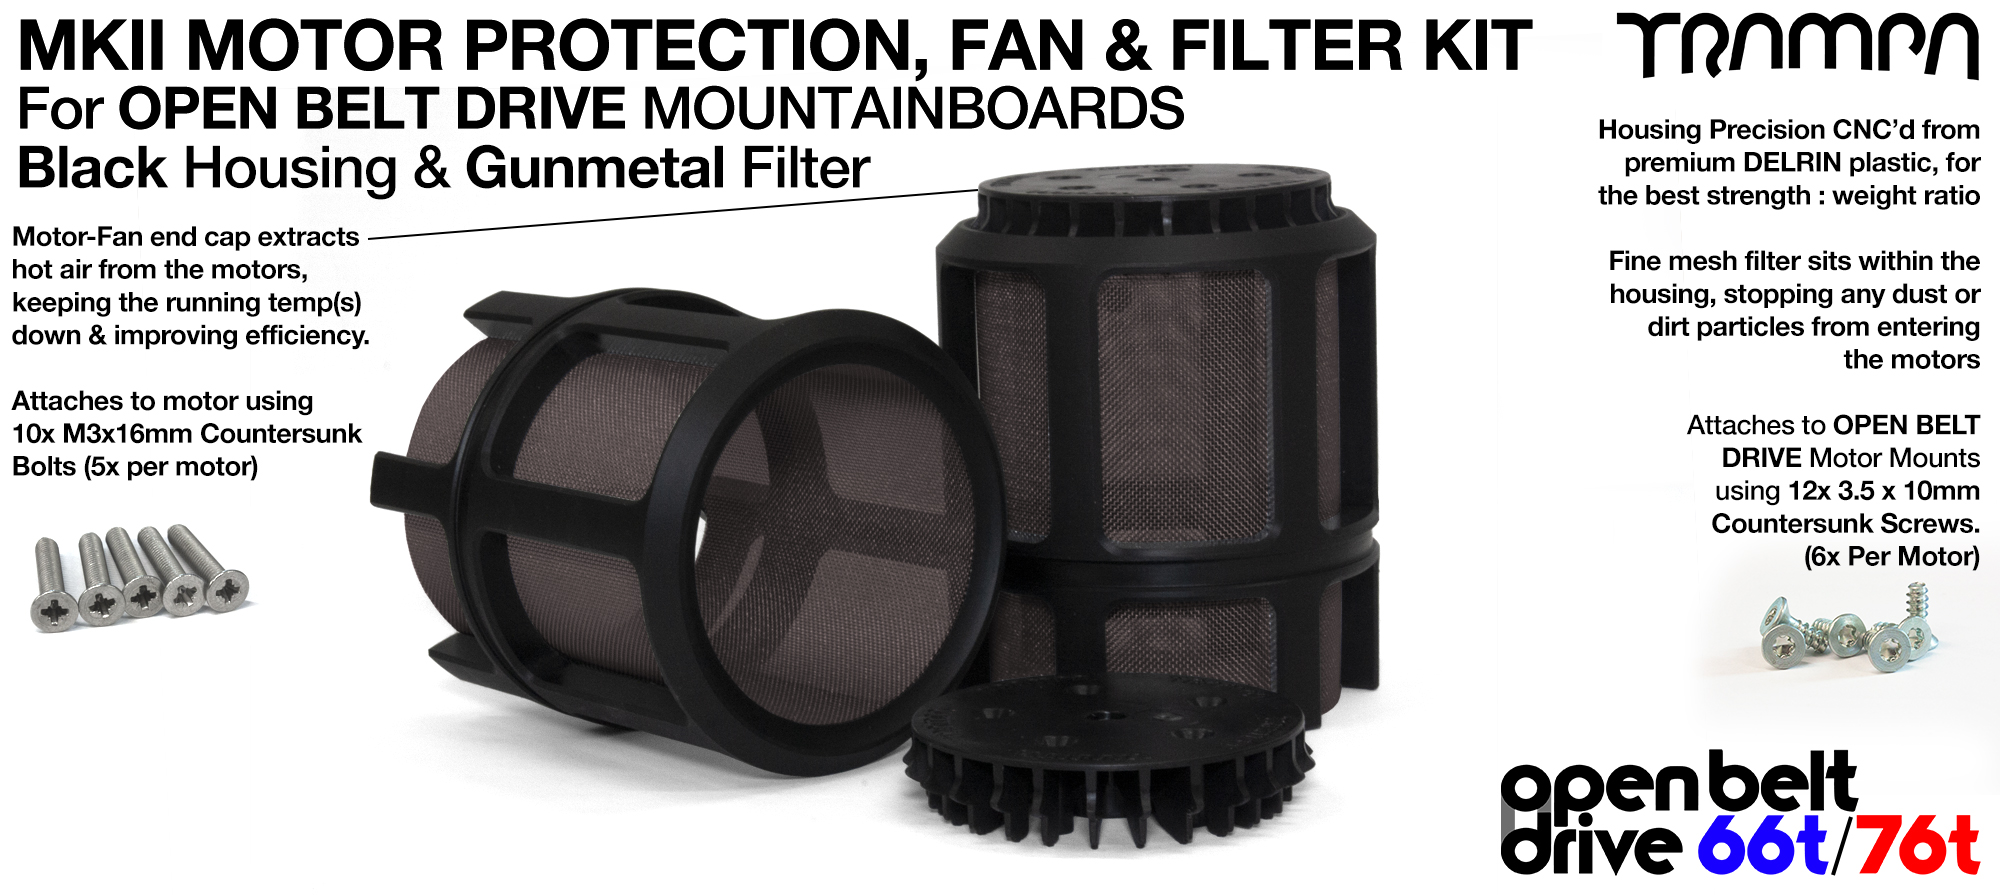 GUNMETAL Mesh Filter in Motor Protection Cage with Fan (+£60)